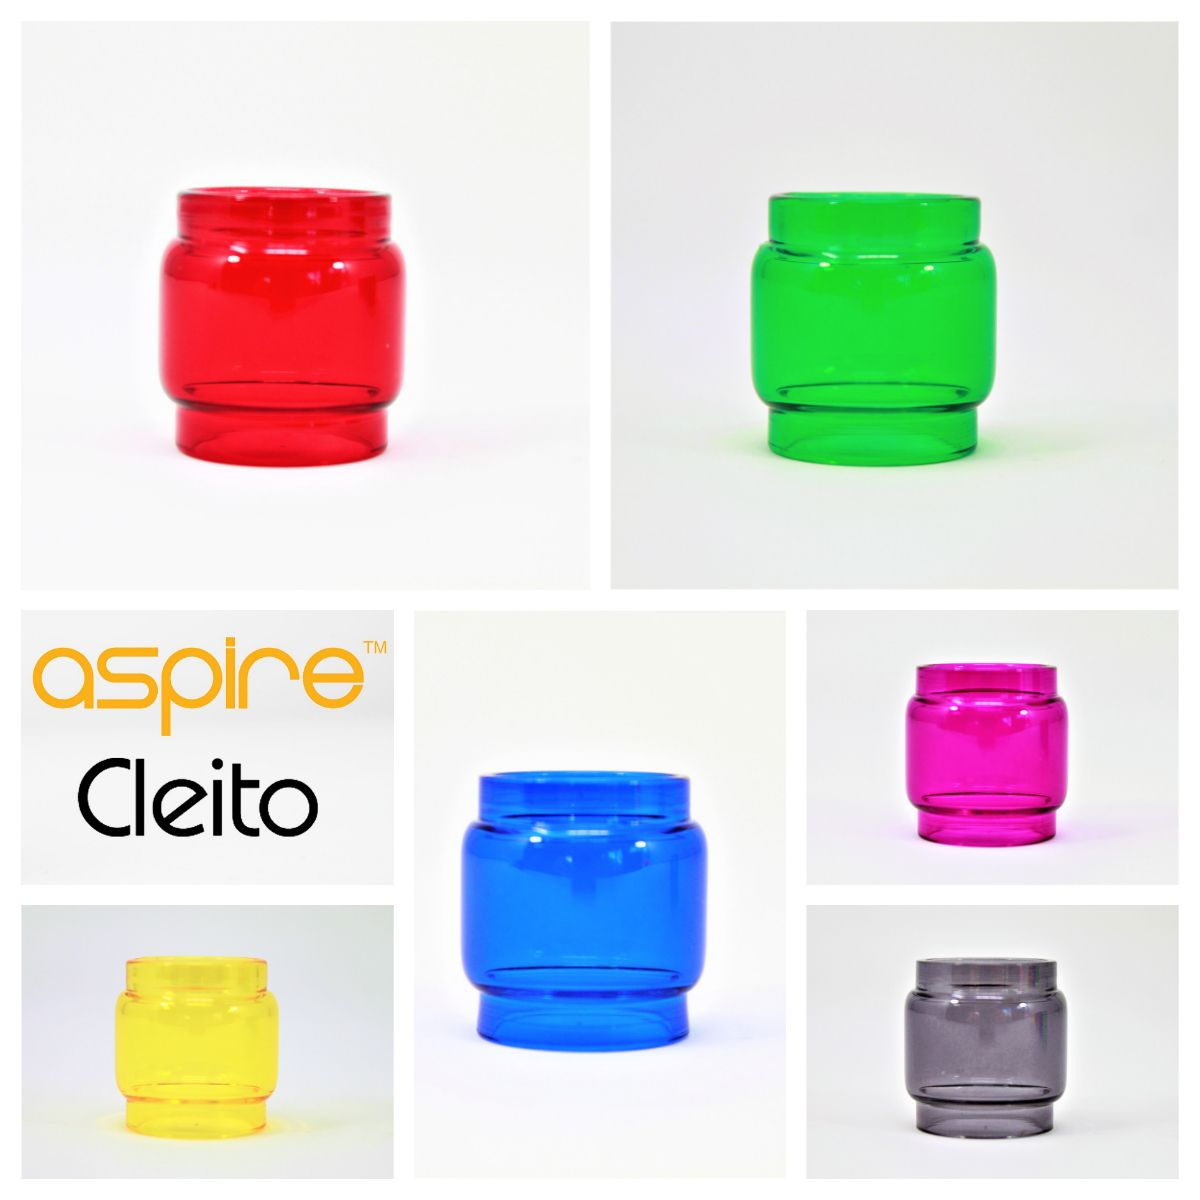 $5 99 ASPIRE CLEITO COLORED EXPANSION GLASS FREE SAME DAY